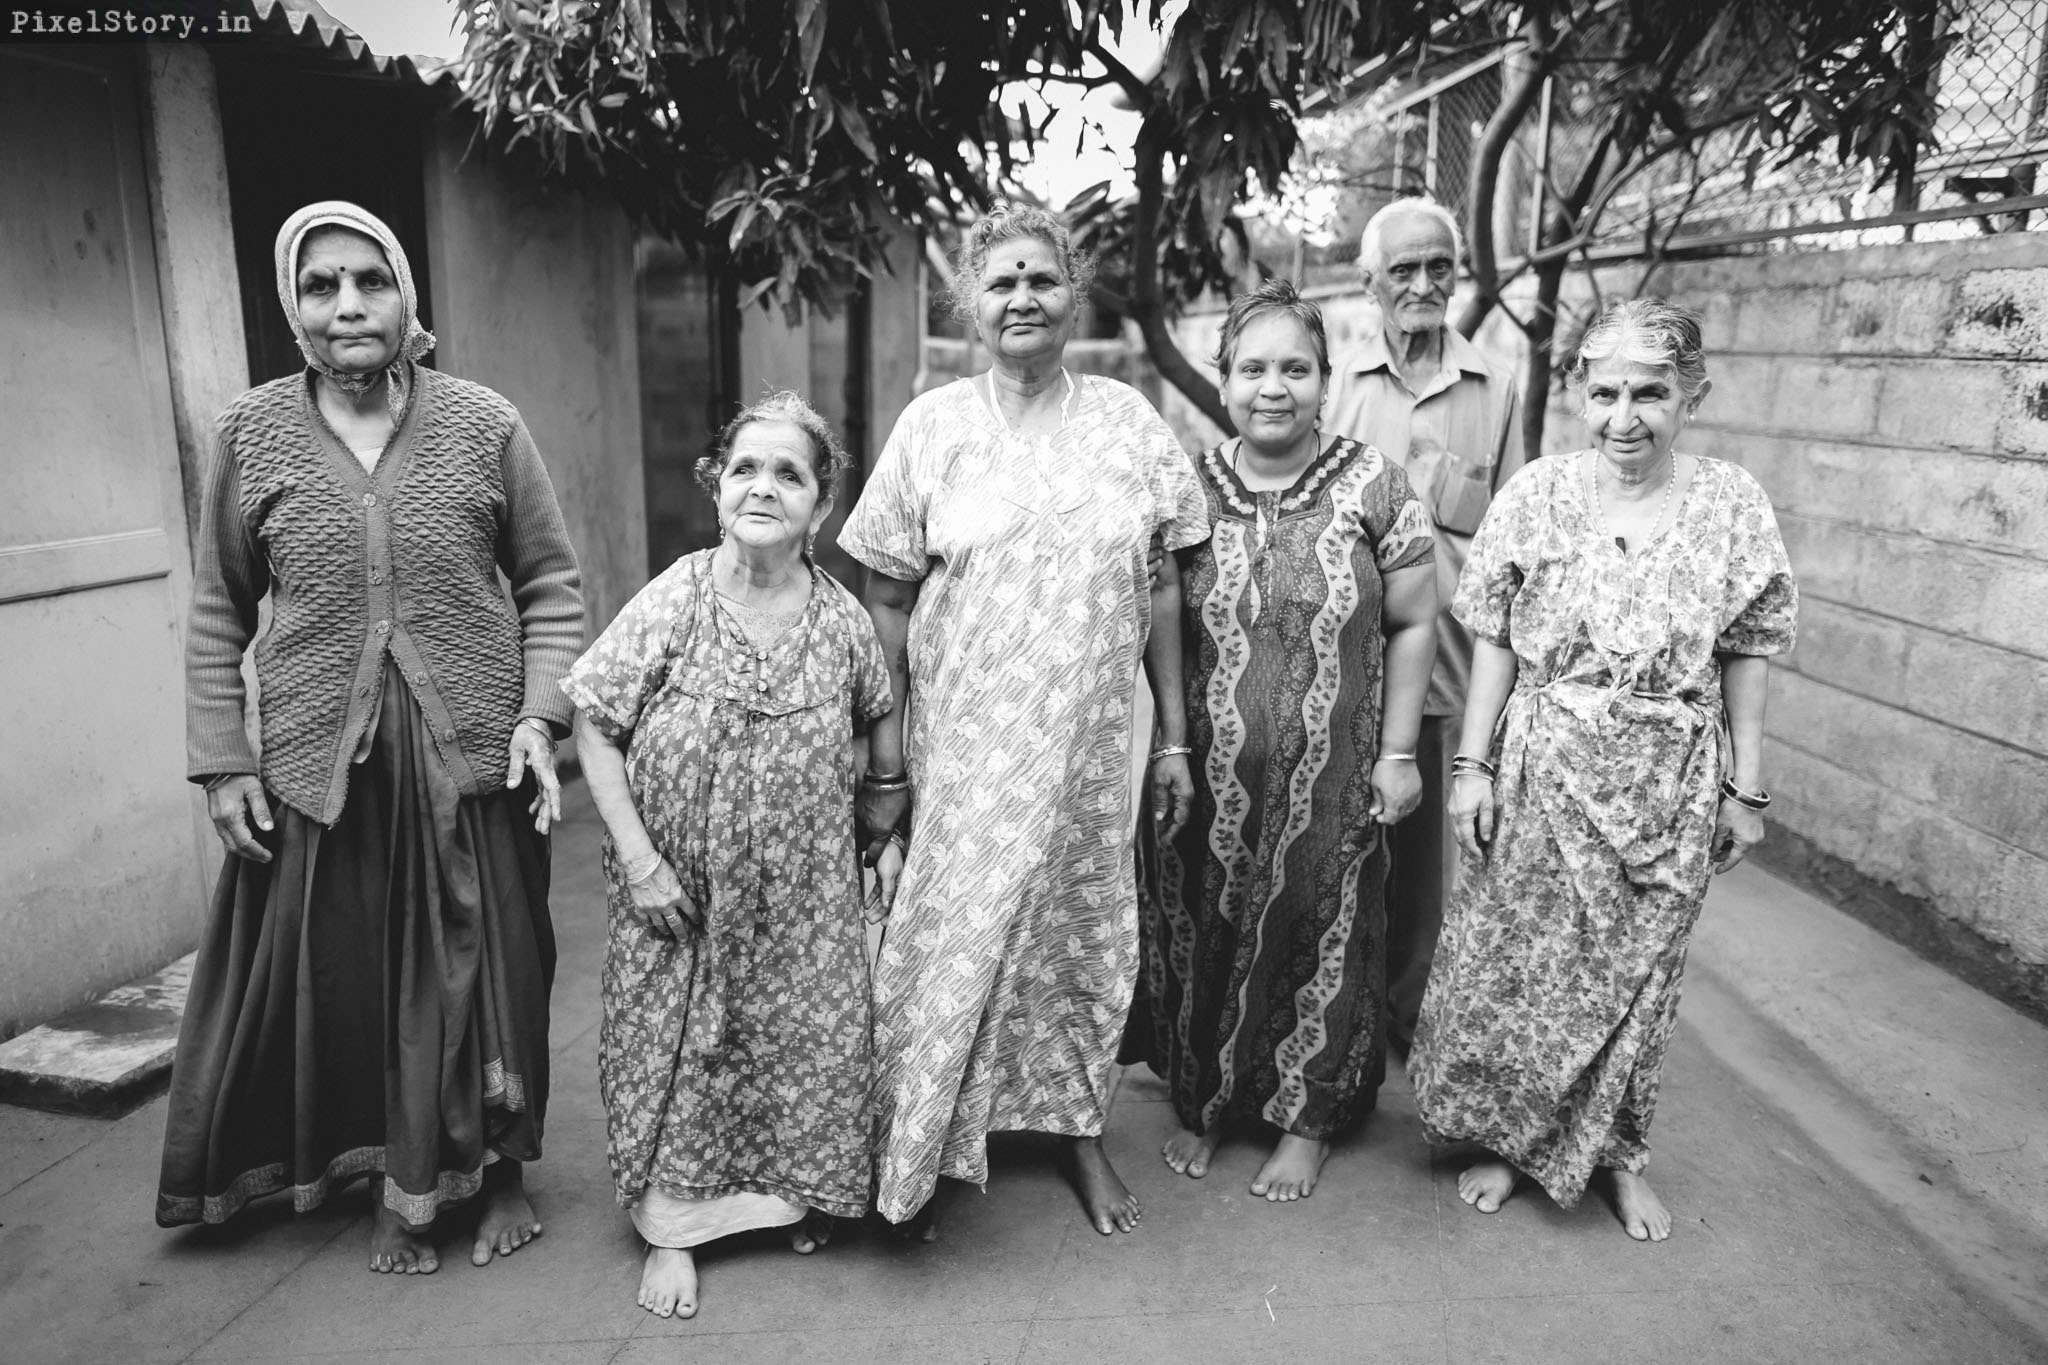 PixelStory-Orphanage-OldAge-Axis-Concentrix-70.jpg